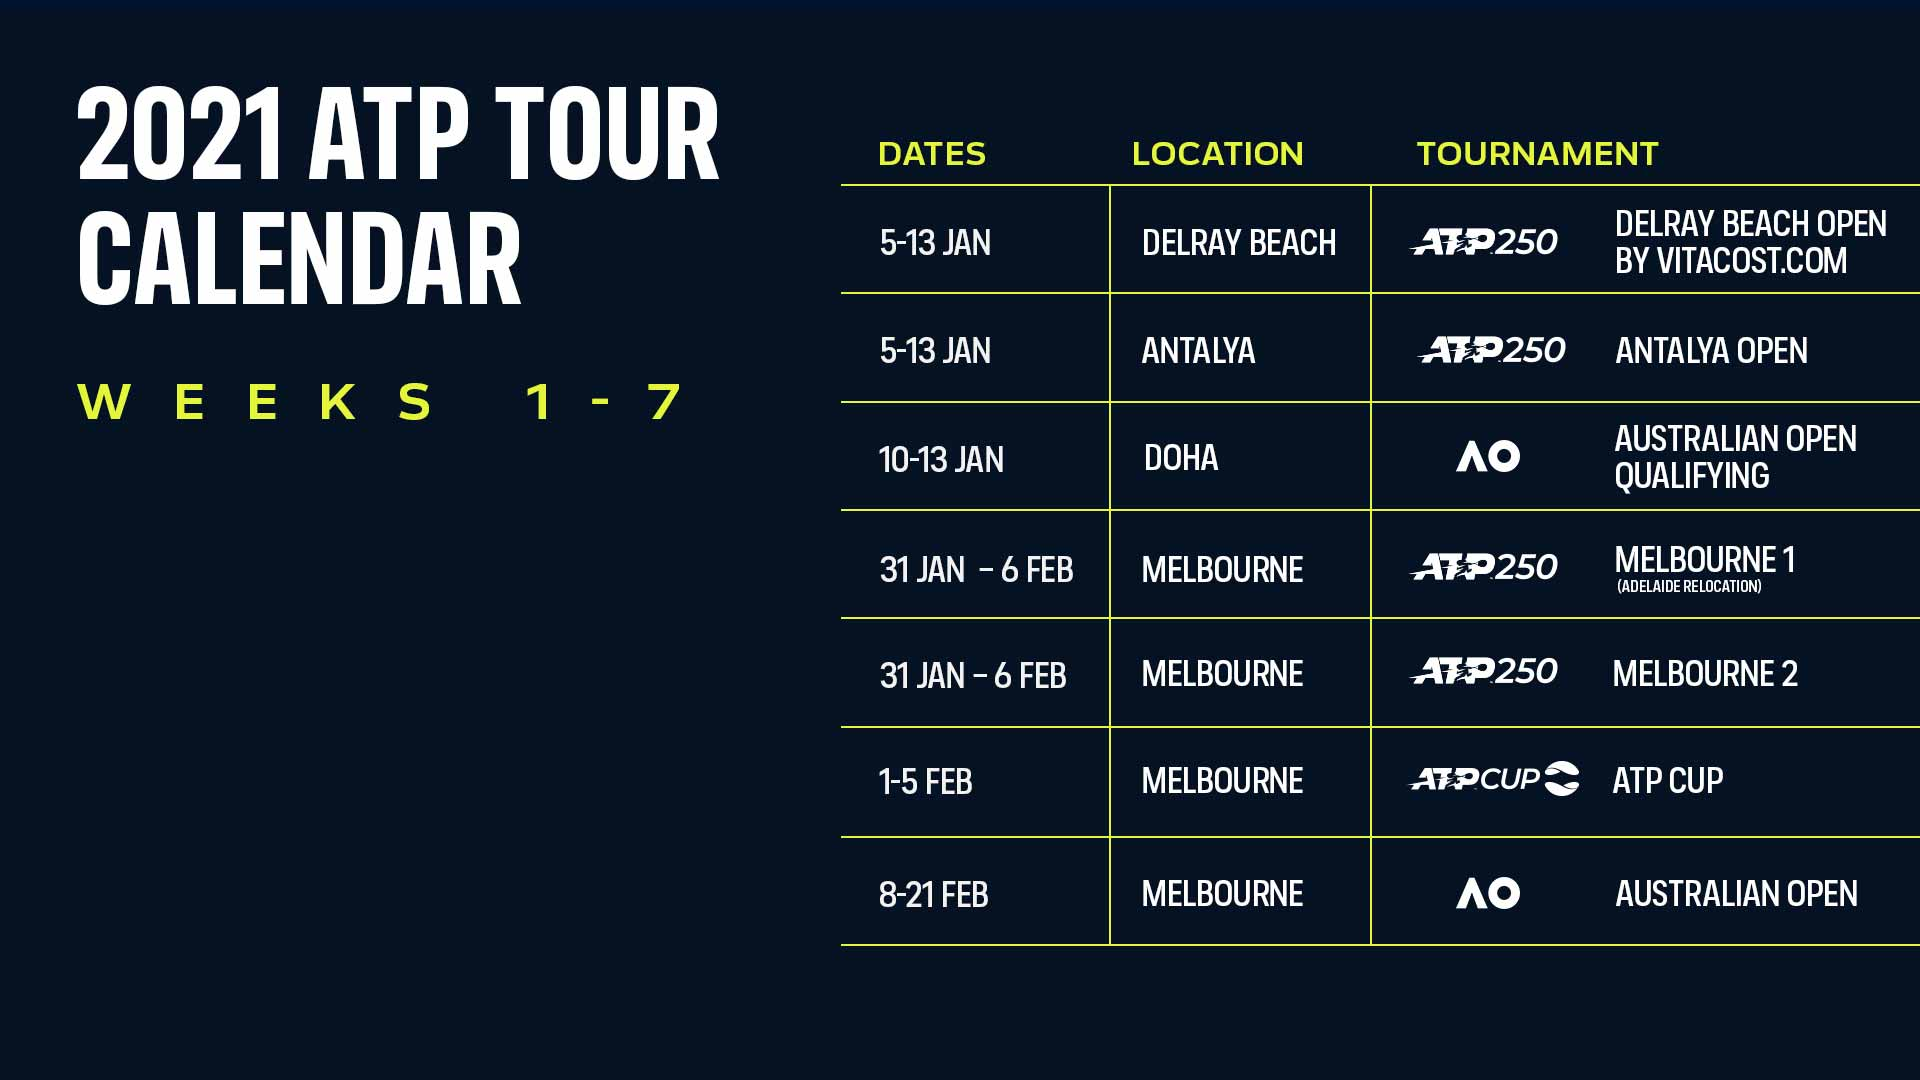 Fed Cup 2021 Calendrier ATP Announces Updated Start To 2021 Calendar | ATP Tour | Tennis